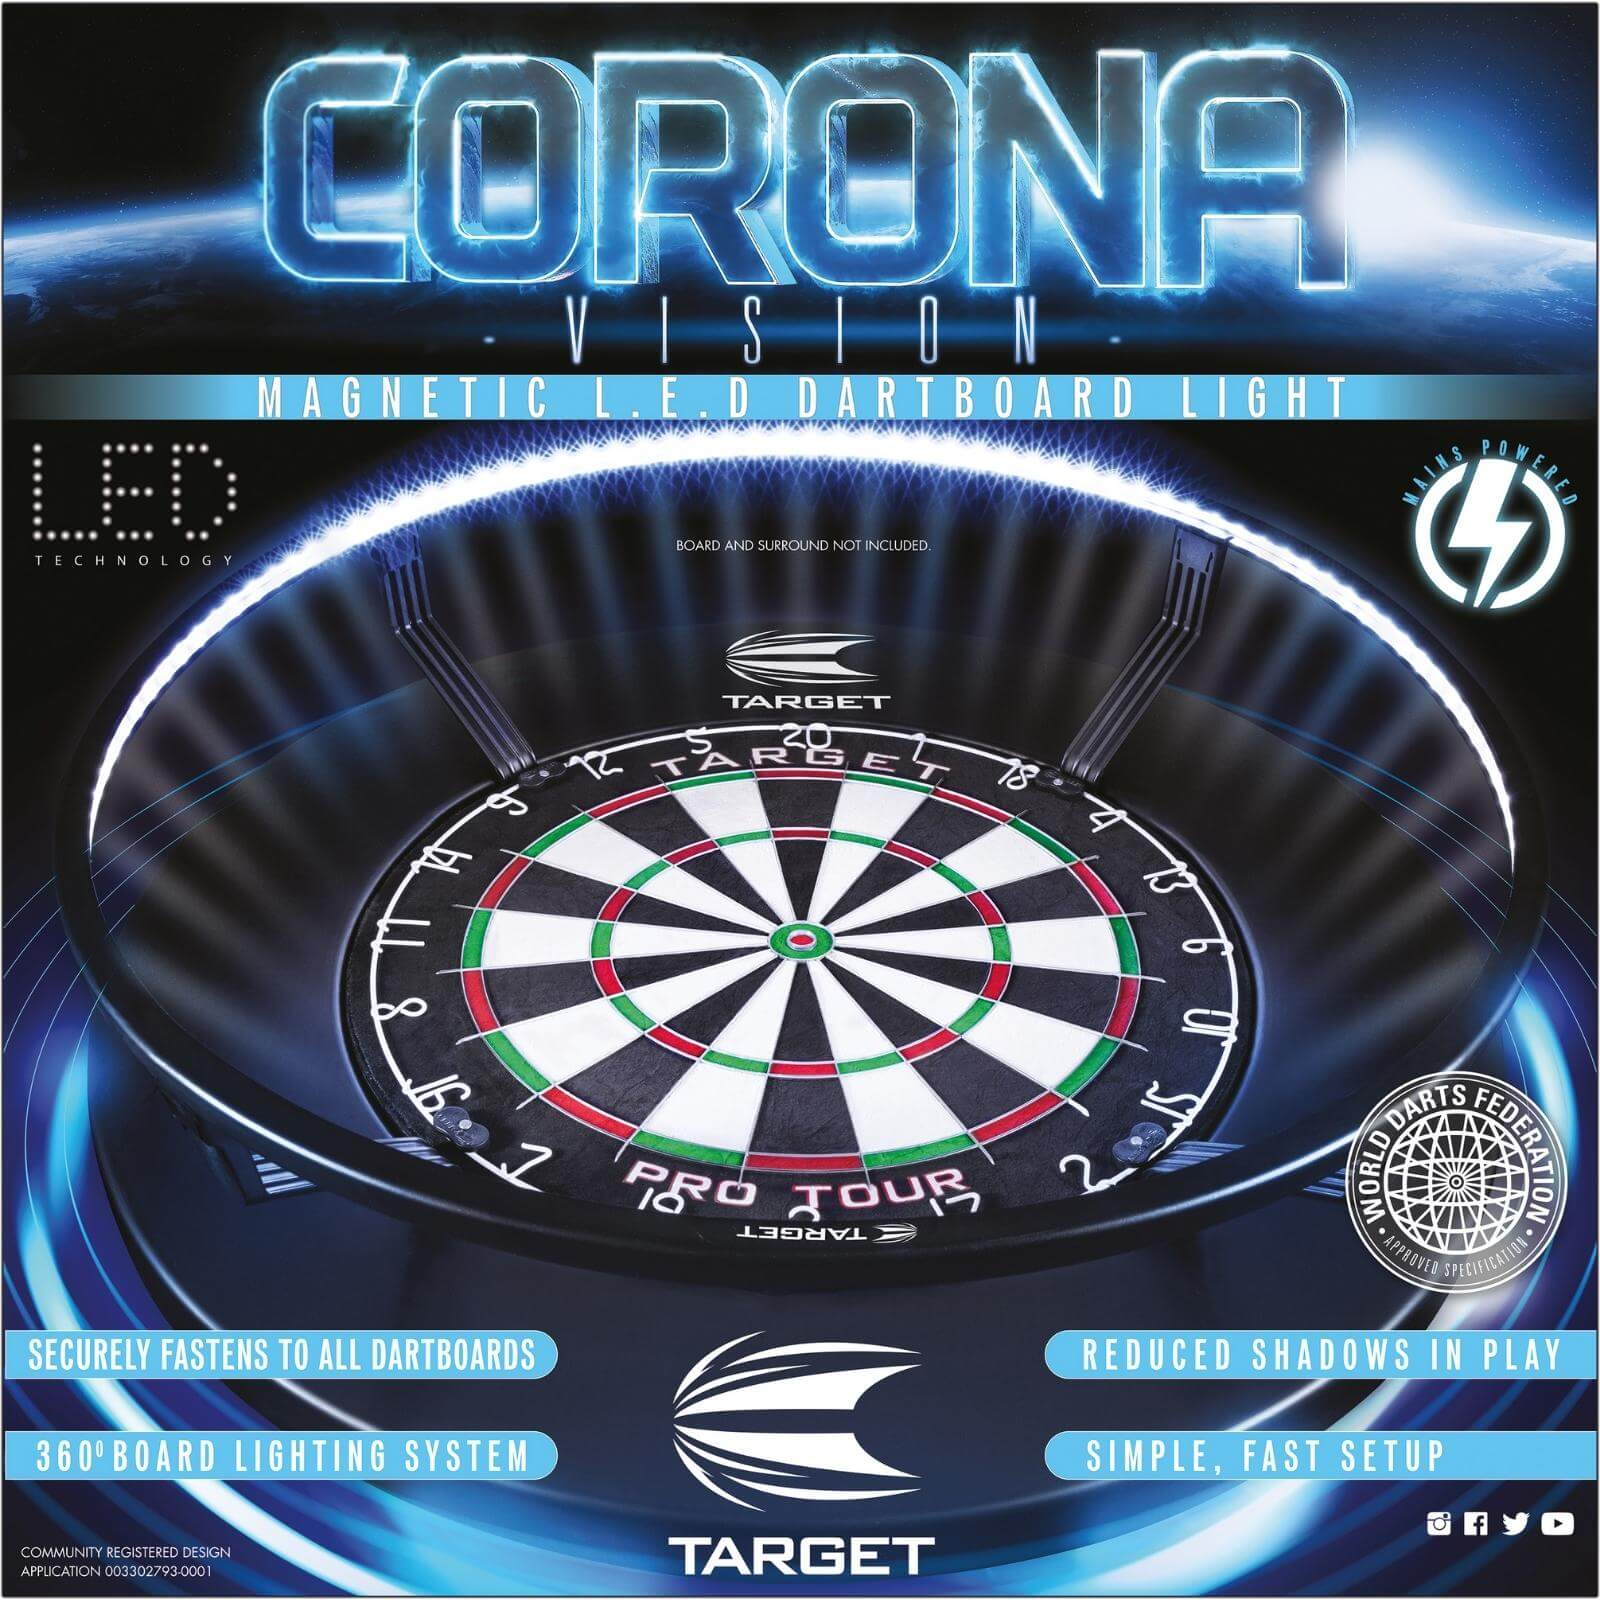 Dartboard Accessories - Target - Corona Vision LED Dartboard Light